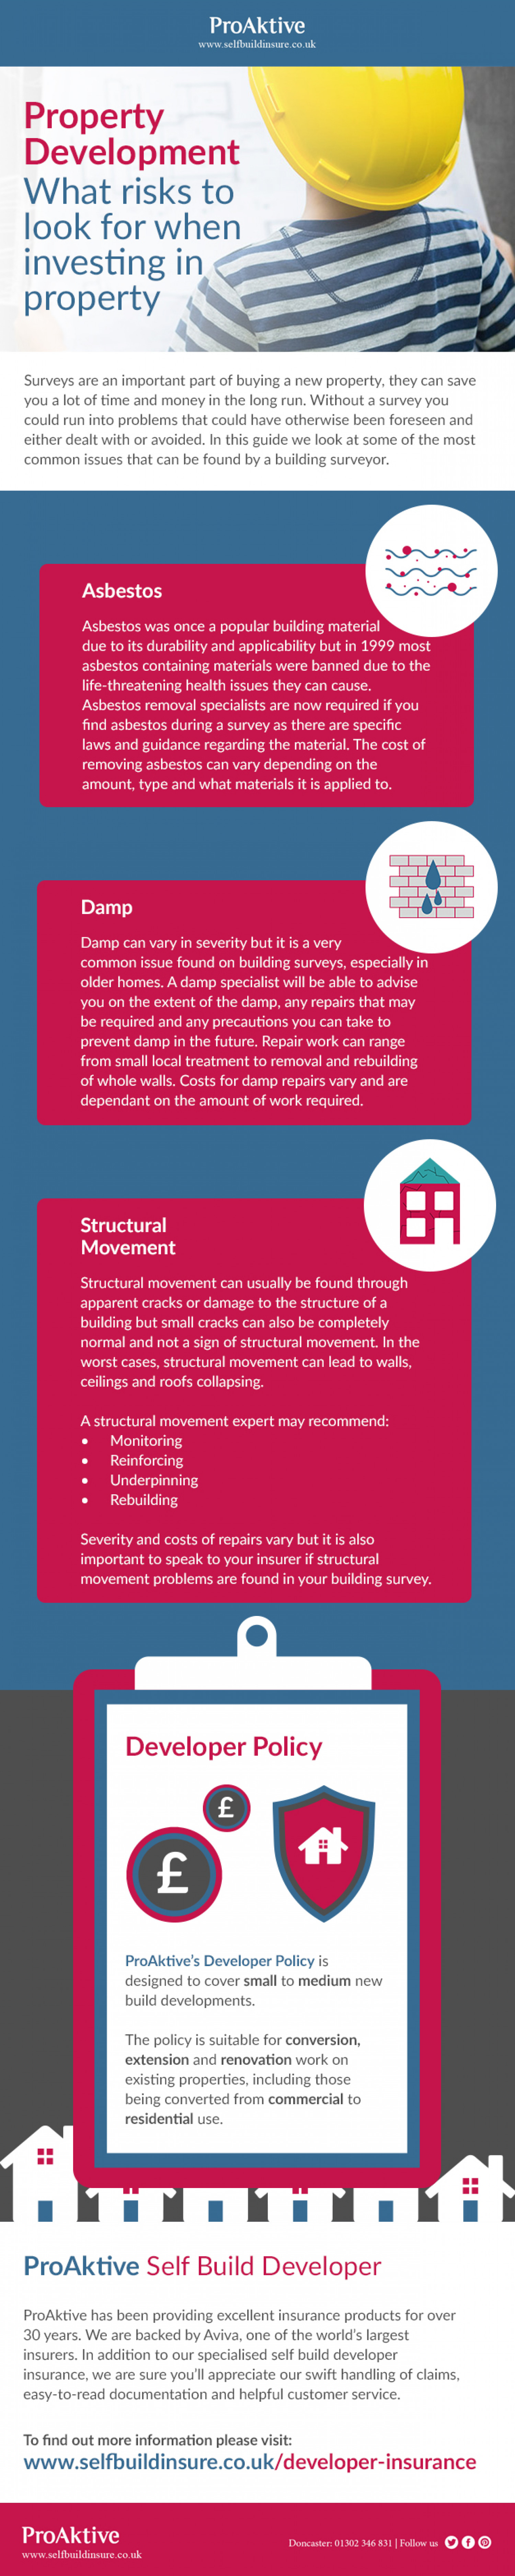 Property Development: What risks to look for when investing in property Infographic